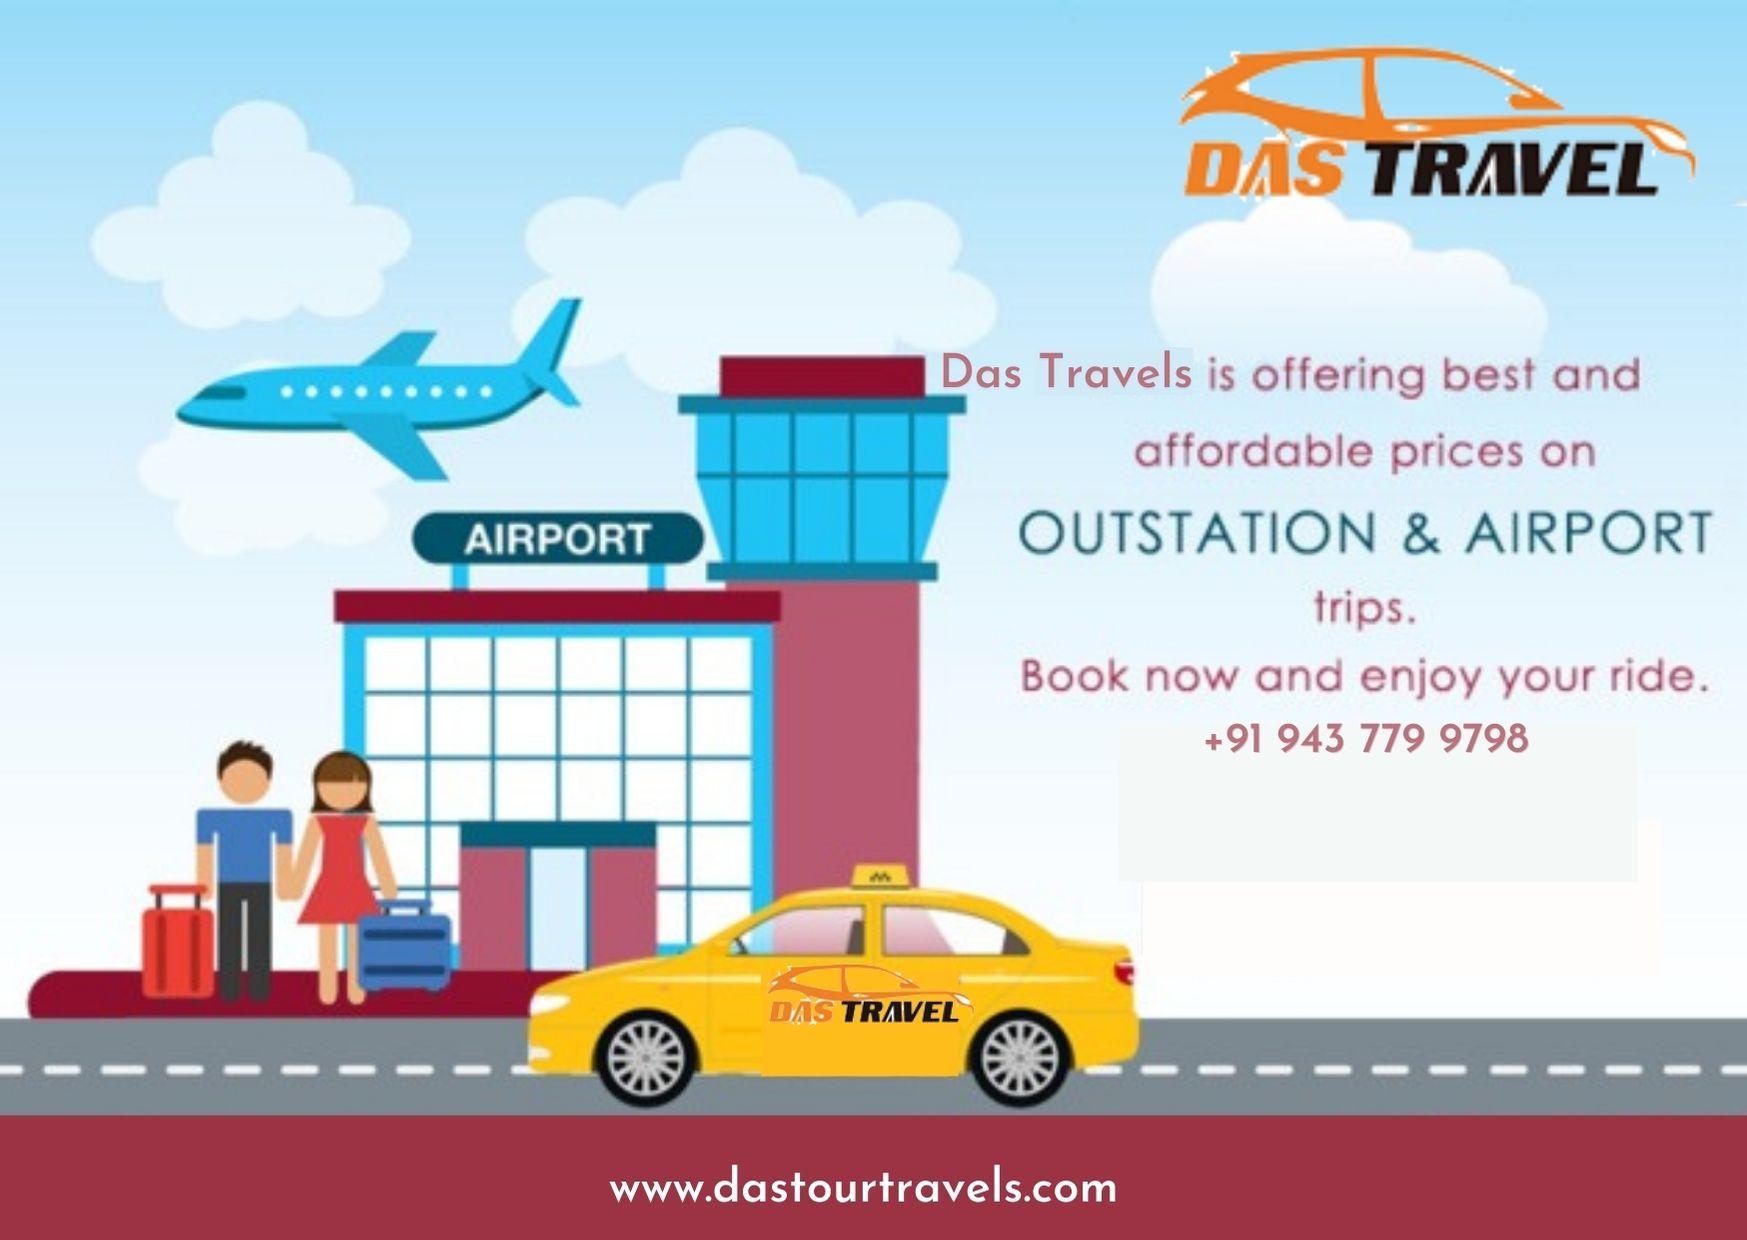 Looking for a Travel Agency in Bhubaneswar ? 24x7 Taxi Service Available. We provide all types of Vehicle. Just Call +91 943 779 9798 and Book Your Ride. #Dastravels #TravelAgency #Cab_Booking #Taxi_Service #Bhubaneswar #Odisha